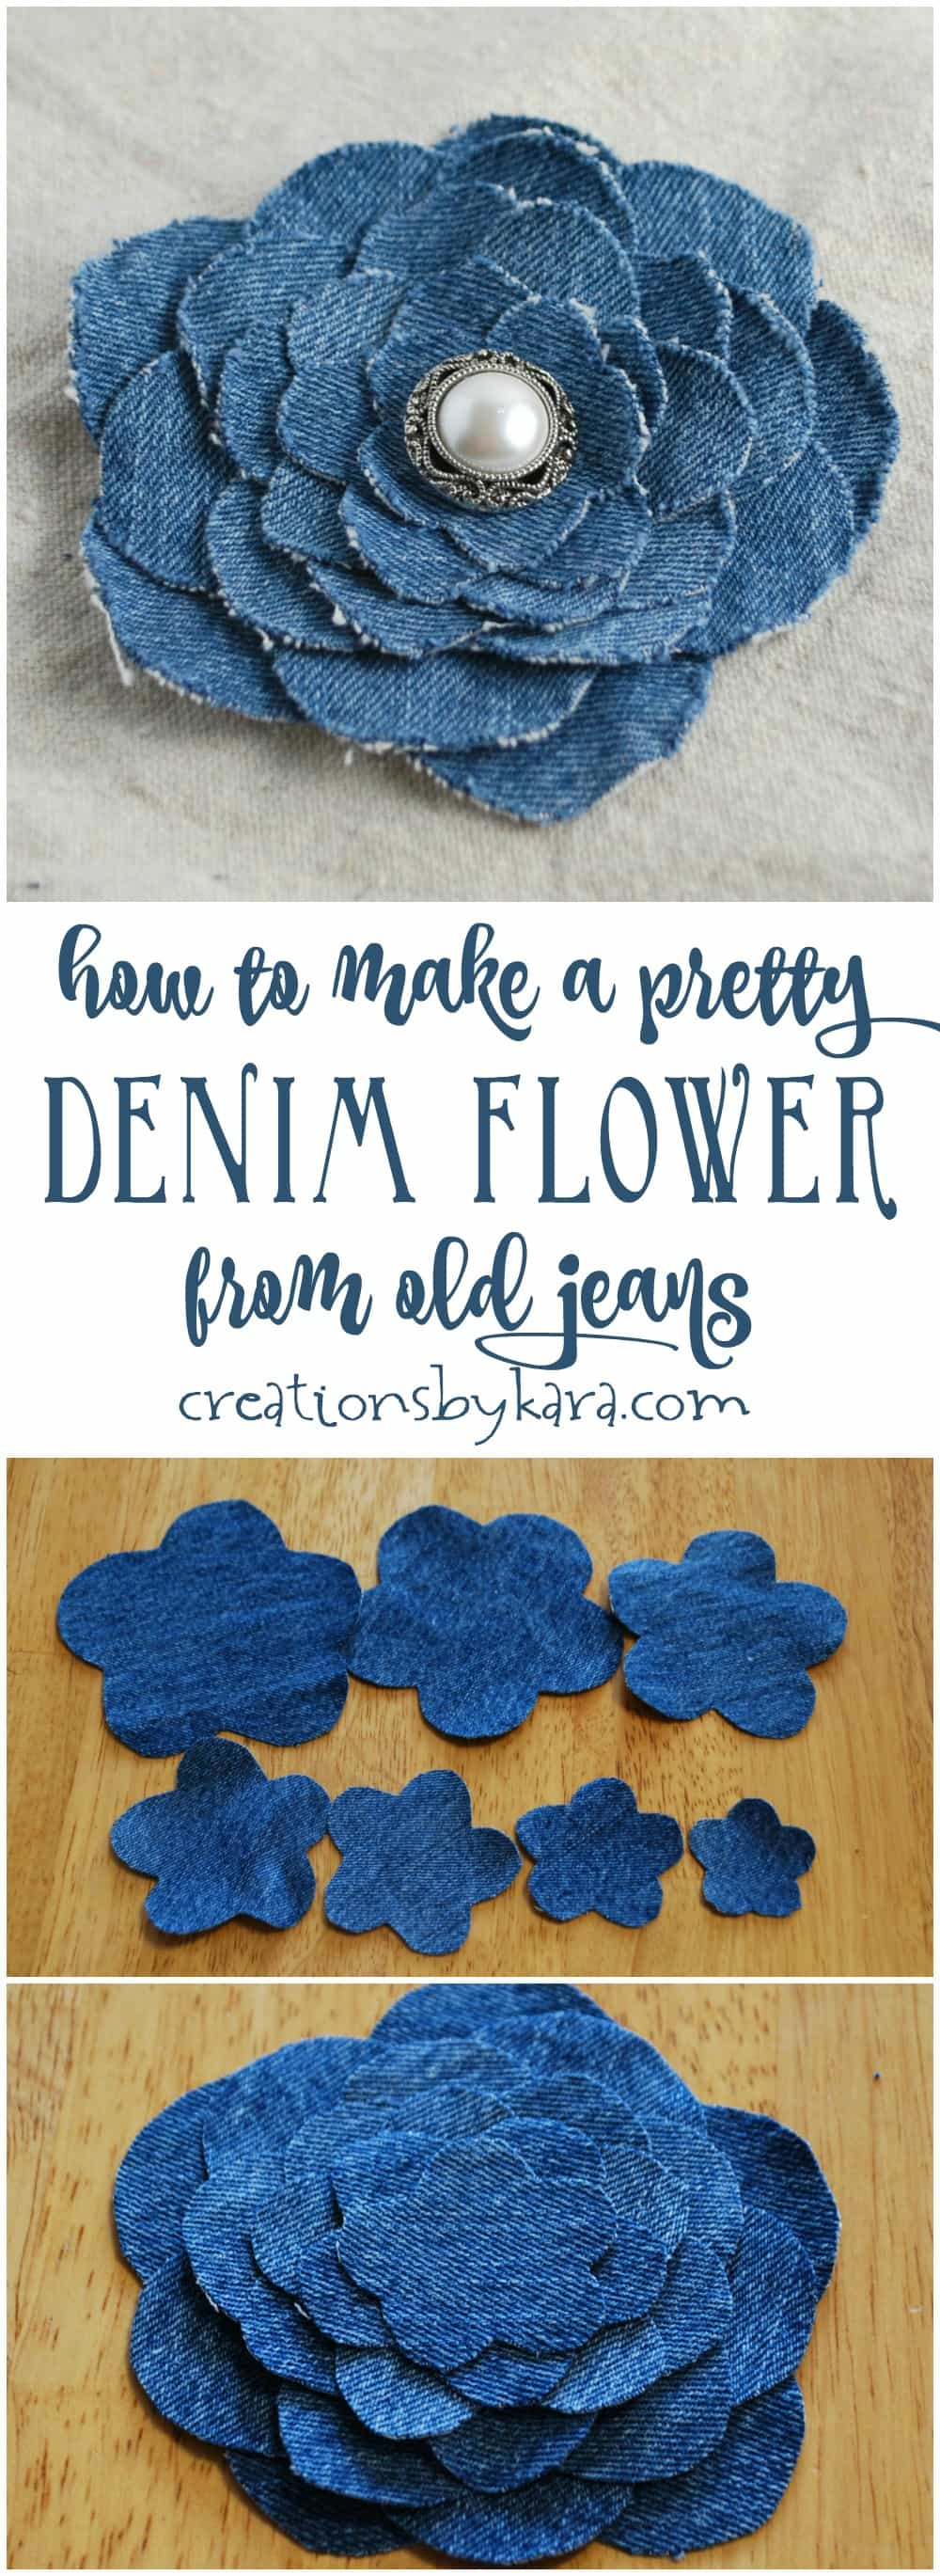 Step by step instructions for making a beautiful denim flower from an old pair of jeans. A perfect upcycling craft project. Makes a fun gift!